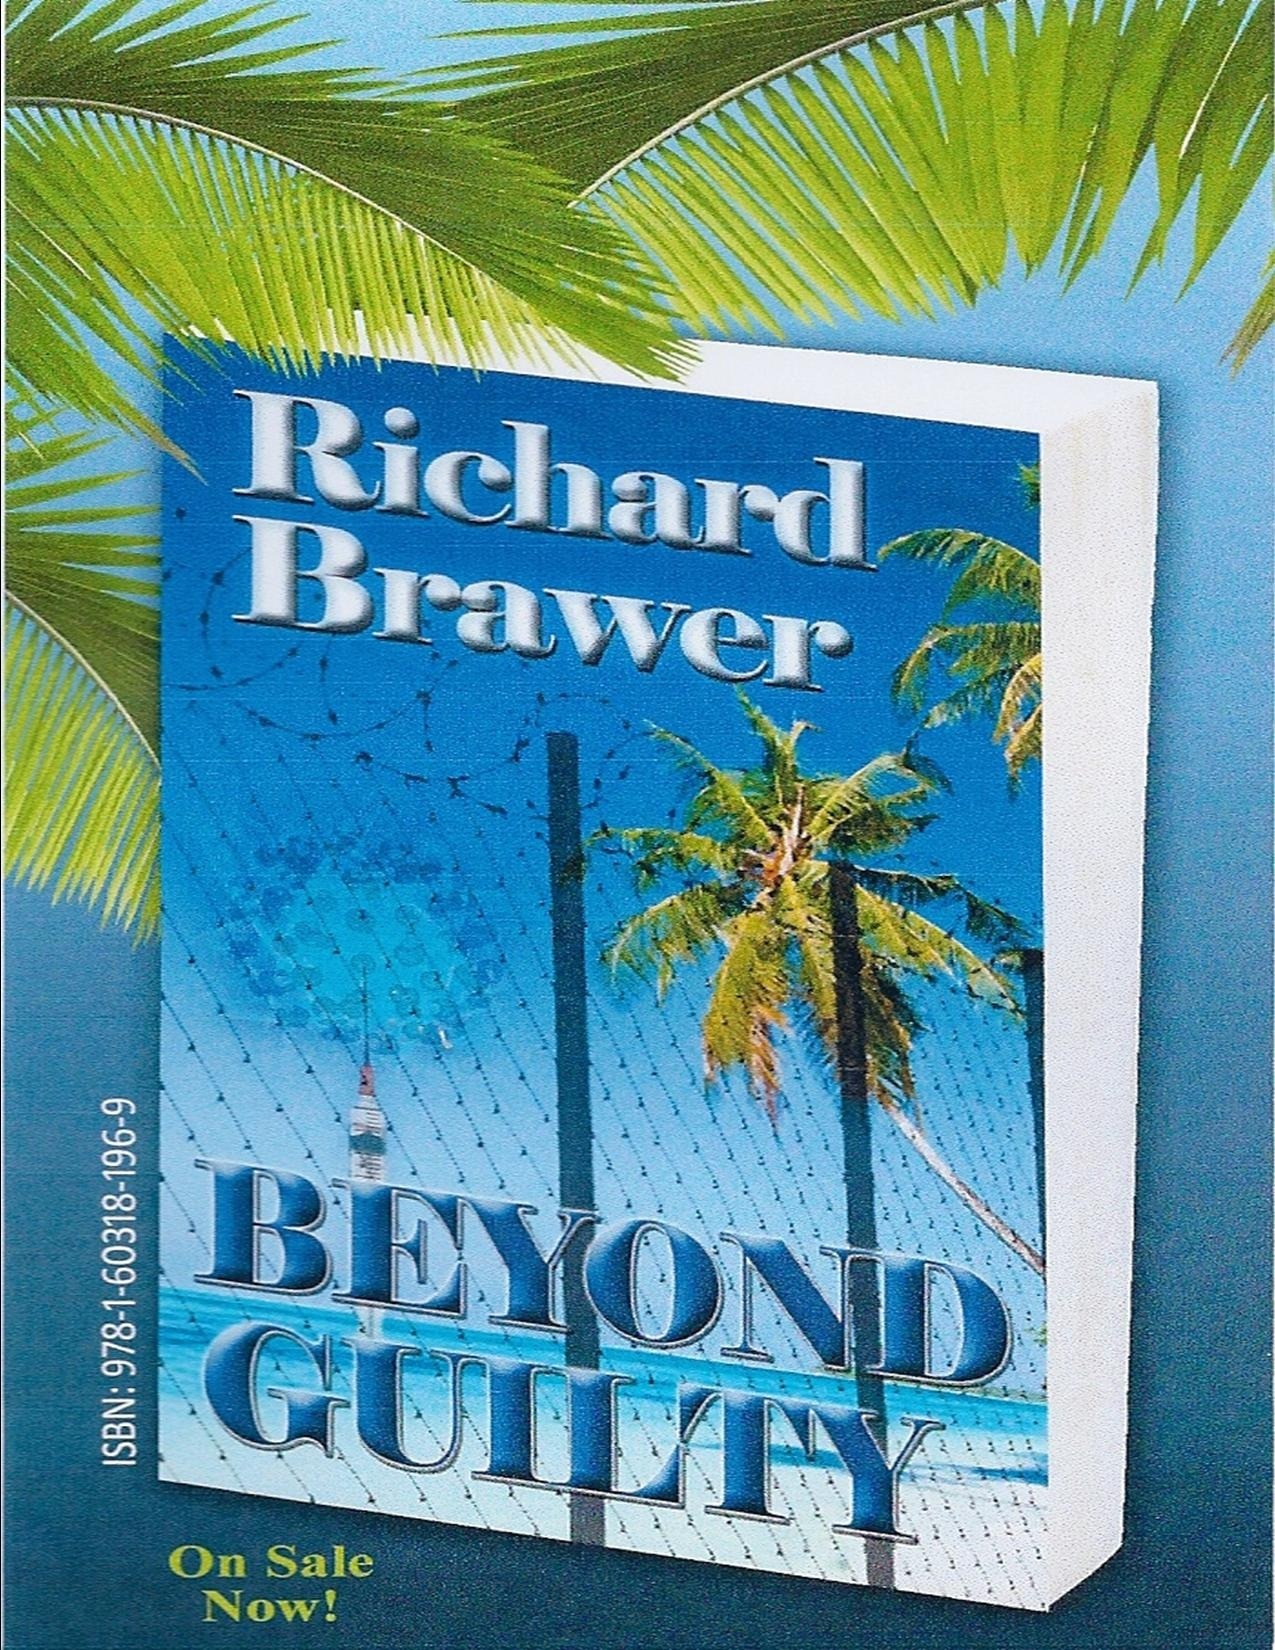 Sneak Peek:  Beyond Guilty by Richard Brawer